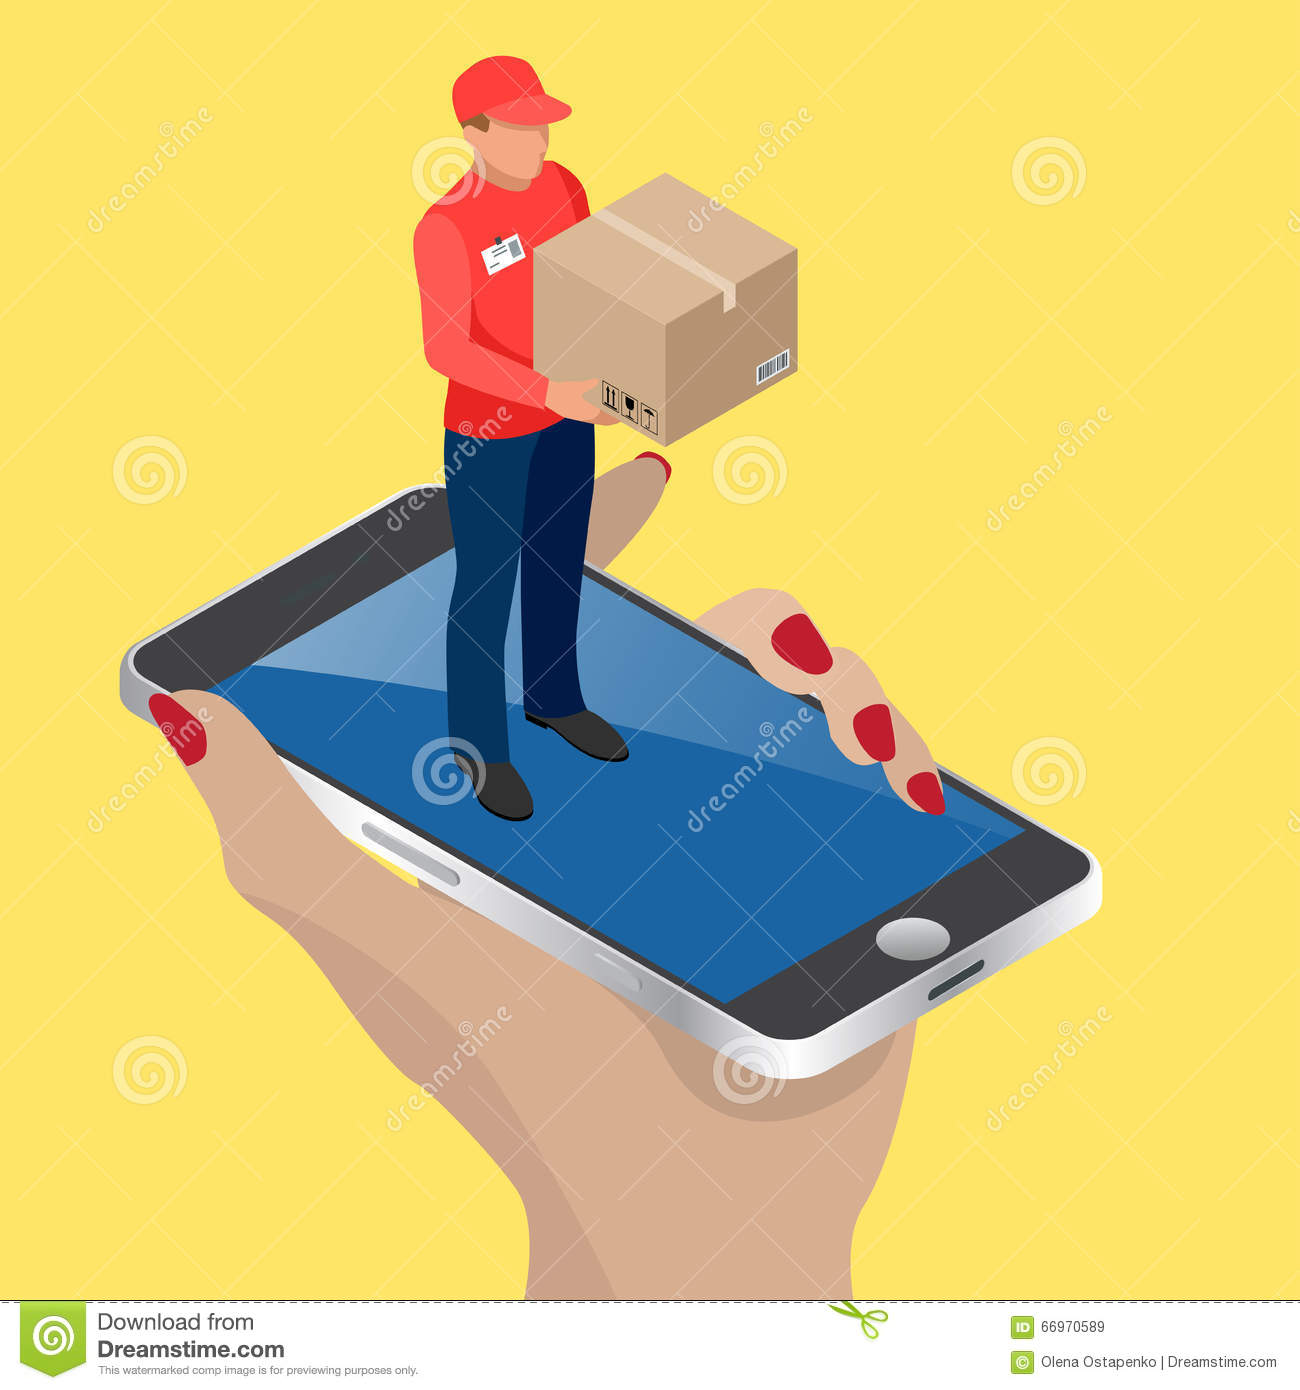 e-commerce-pay-line-line-shopping-concept-mobile-grocery-shopping-e-commerce-online-store-flat-d-web-isometric-66970589.jpg